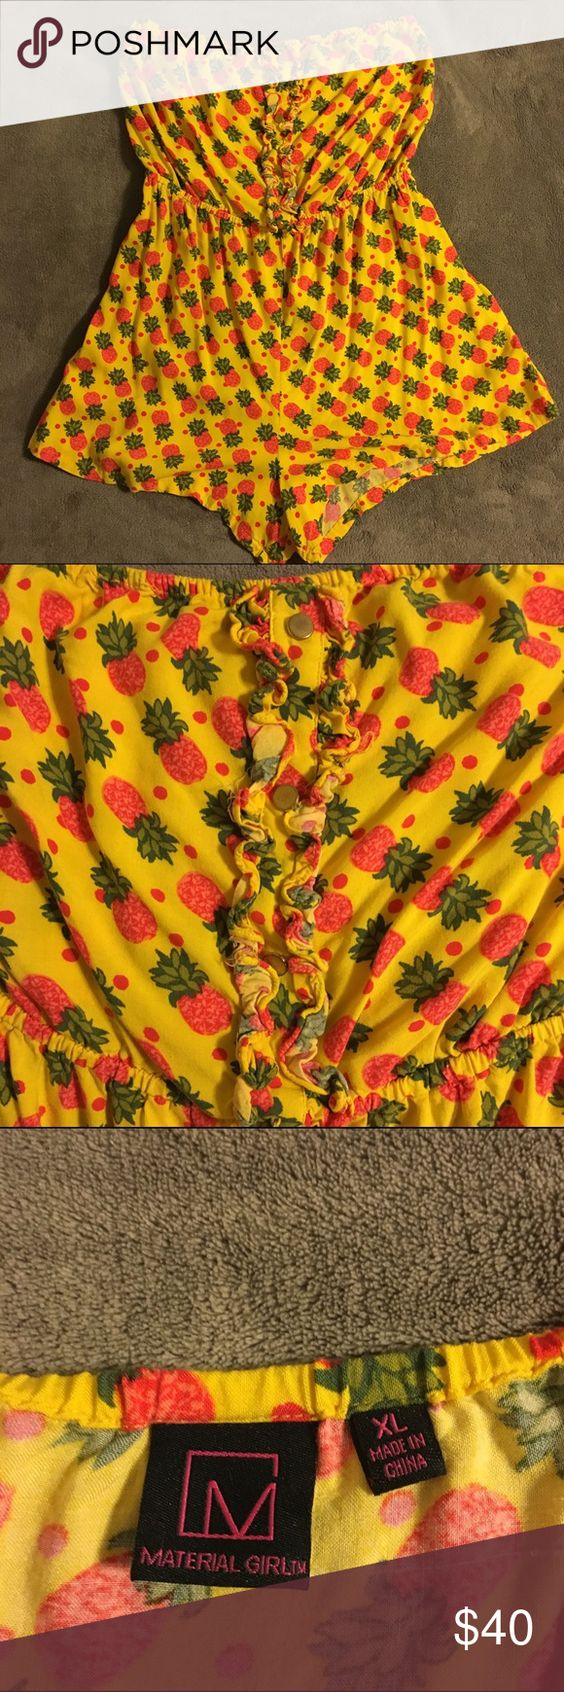 Material Girl Strapless Pineapple Romper Super cute pineapple romper from Material Girl. Elastic waistband. Ruffled detail with gold accent buttons. Soft and comfy! Worn once. Open to reasonable offers. Material Girl Pants Jumpsuits & Rompers